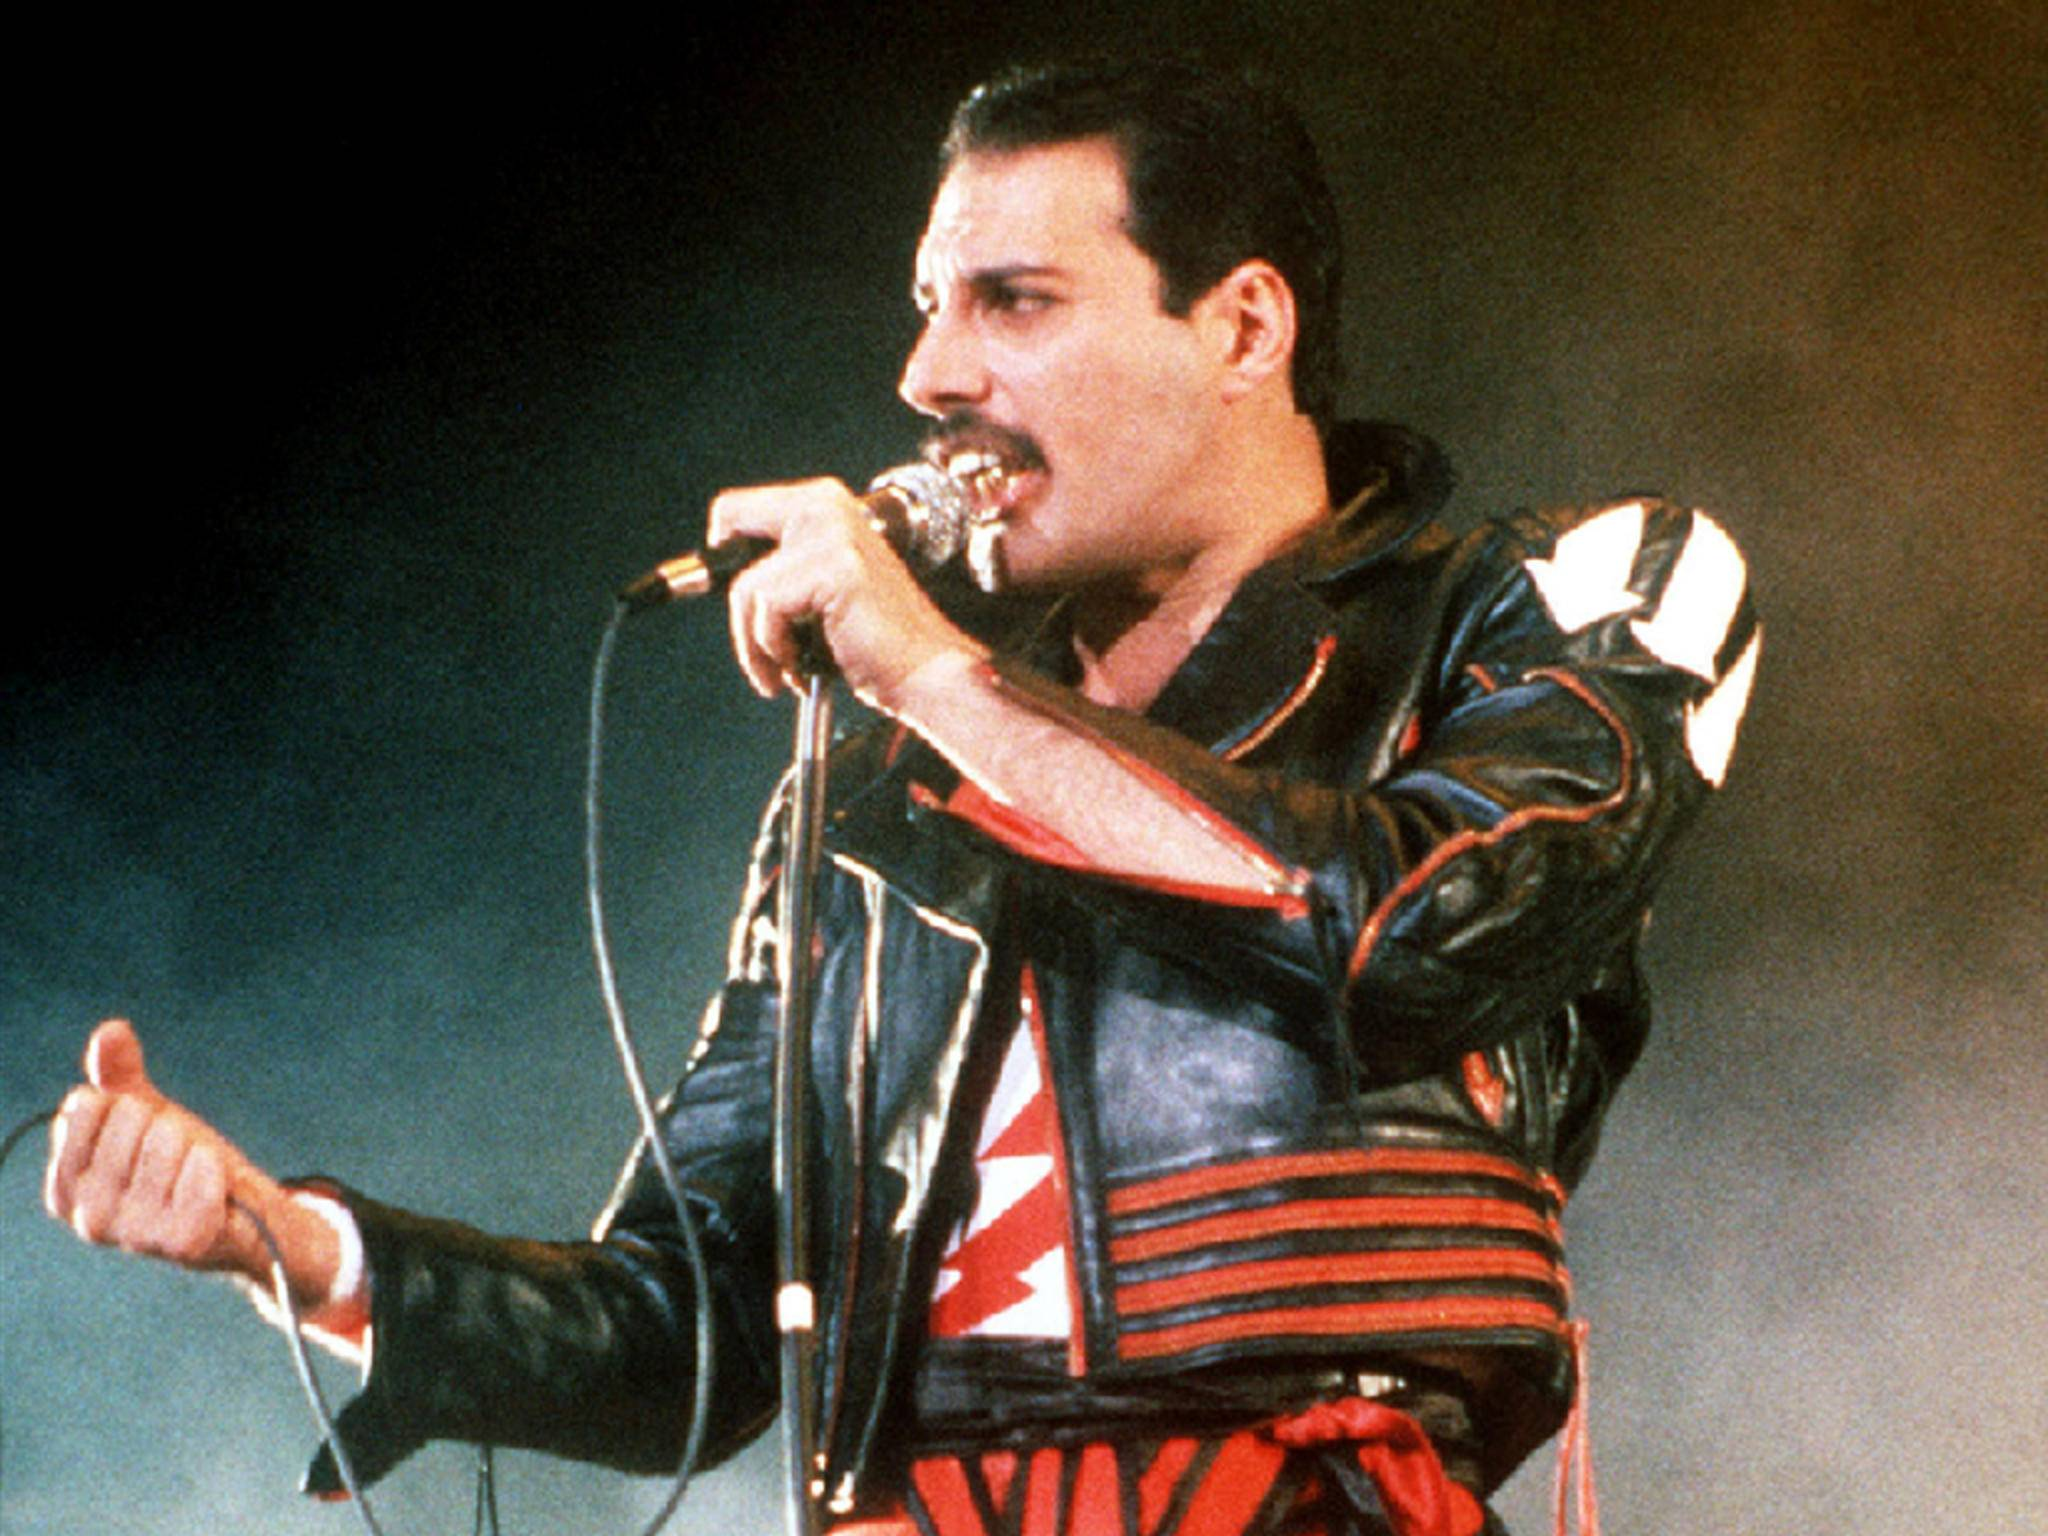 Seit dem 5. September als Asteroid im All unterwegs: Freddie Mercury